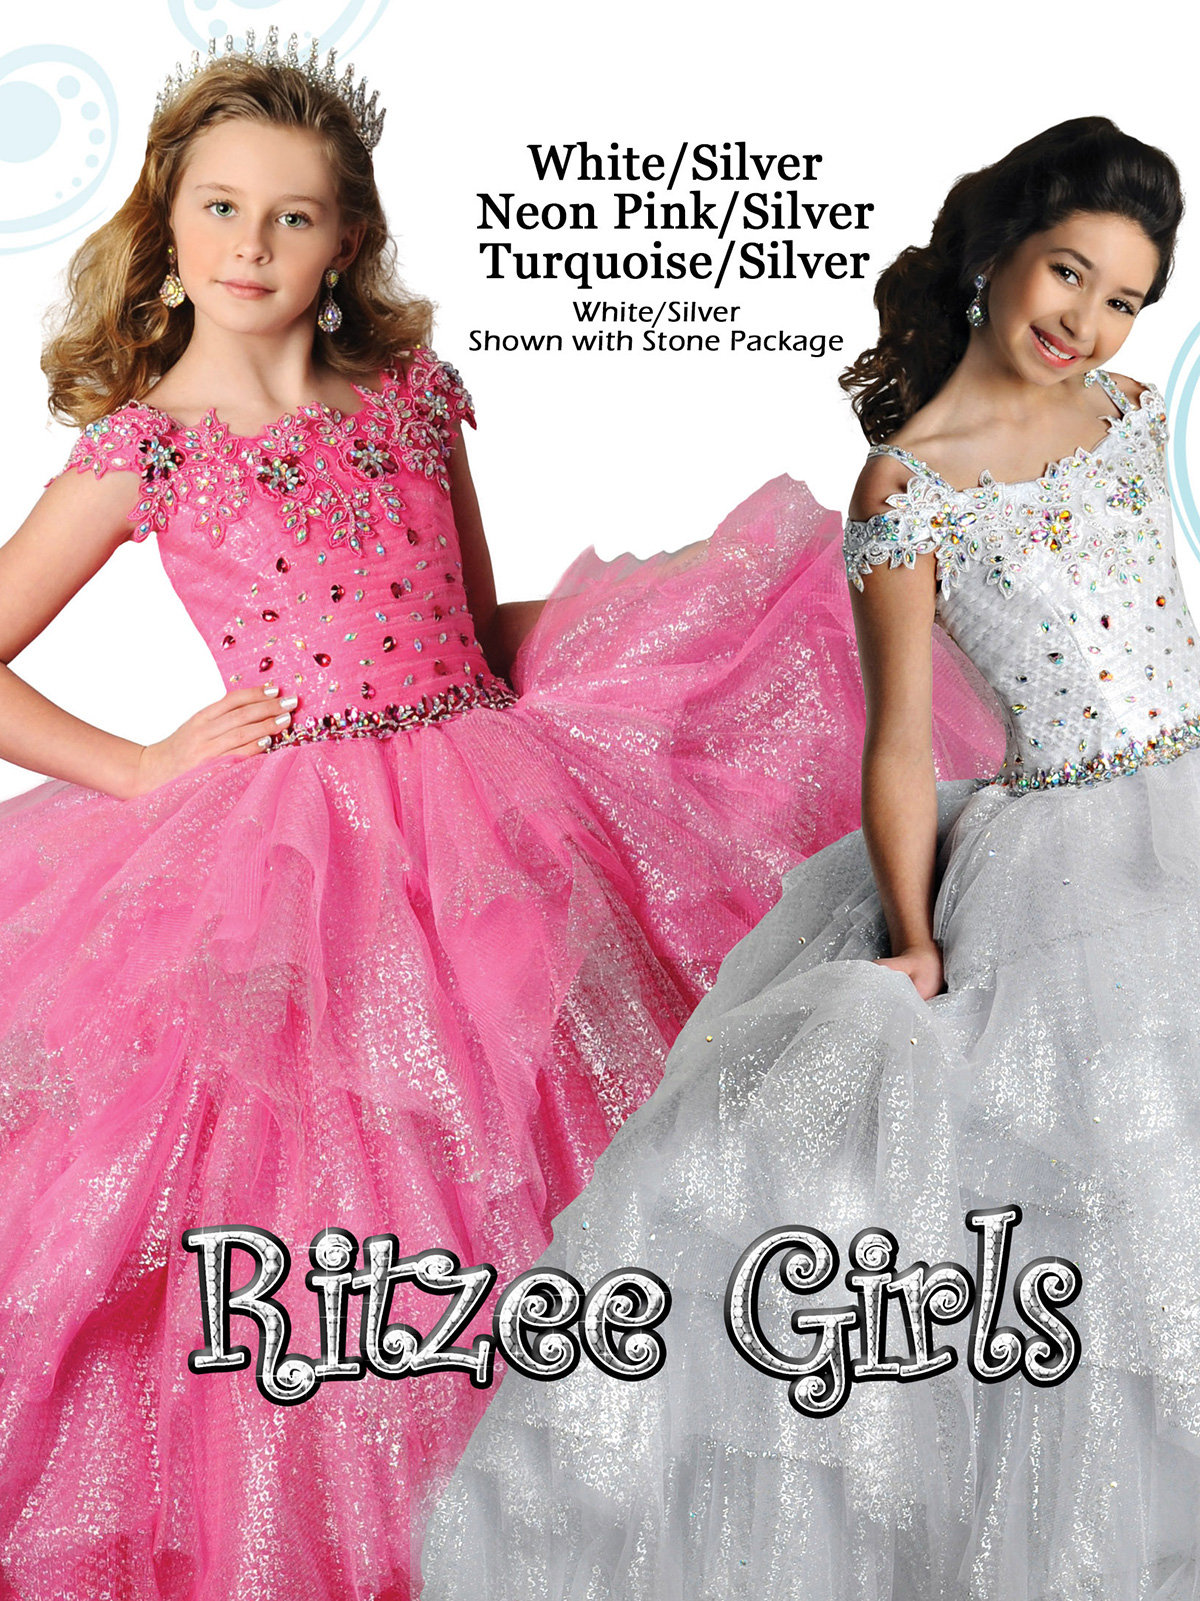 Classy Ritzee Girls Lace Off The Shoulder Pageant Gown 7021